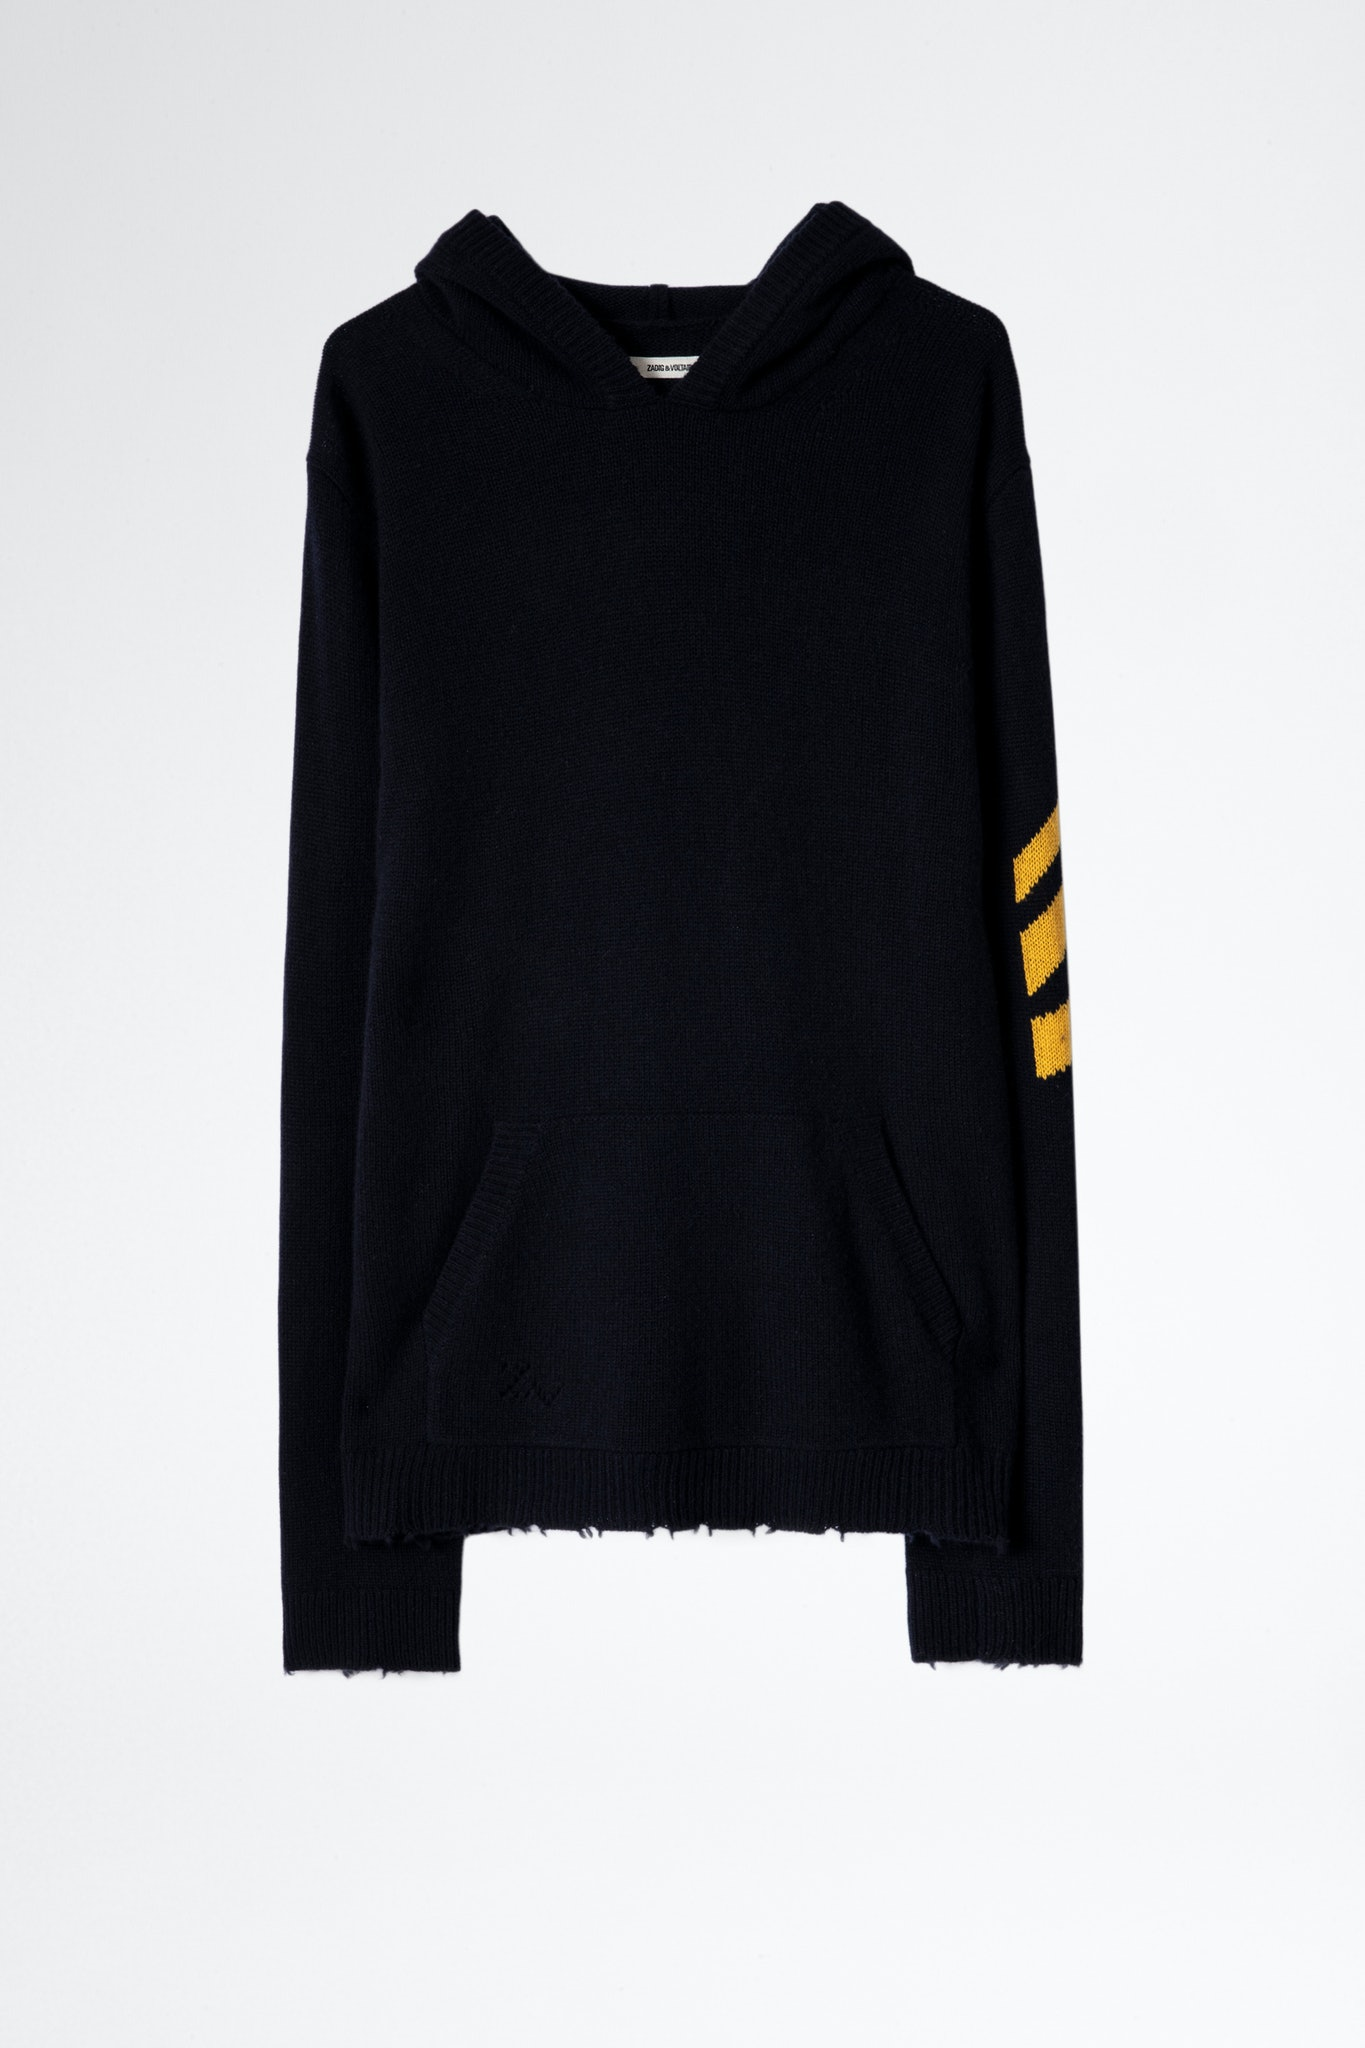 Clay Cashmere Sweater